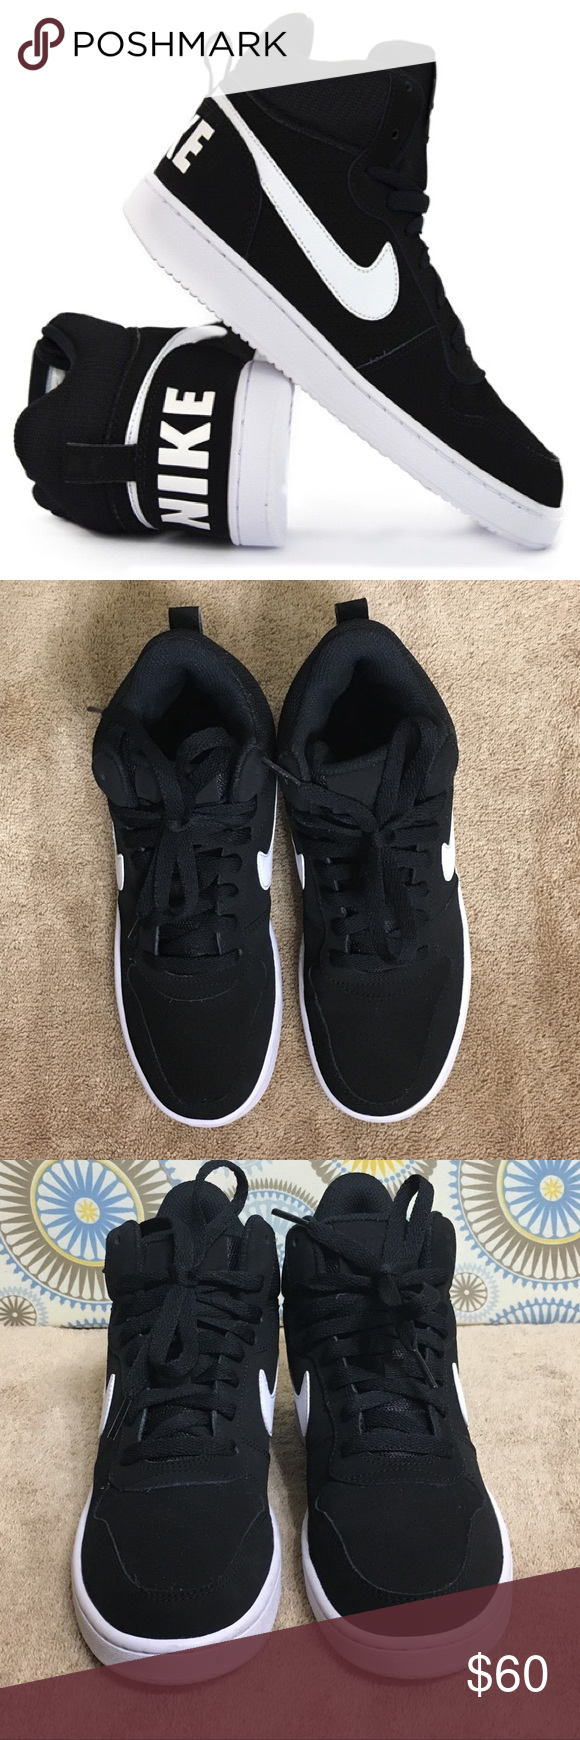 online store 59ff7 fddd1 Nike Recreation Mid Womens Basketball These are brand new Nike Recreation  Mid Womens Basketball Shoes.